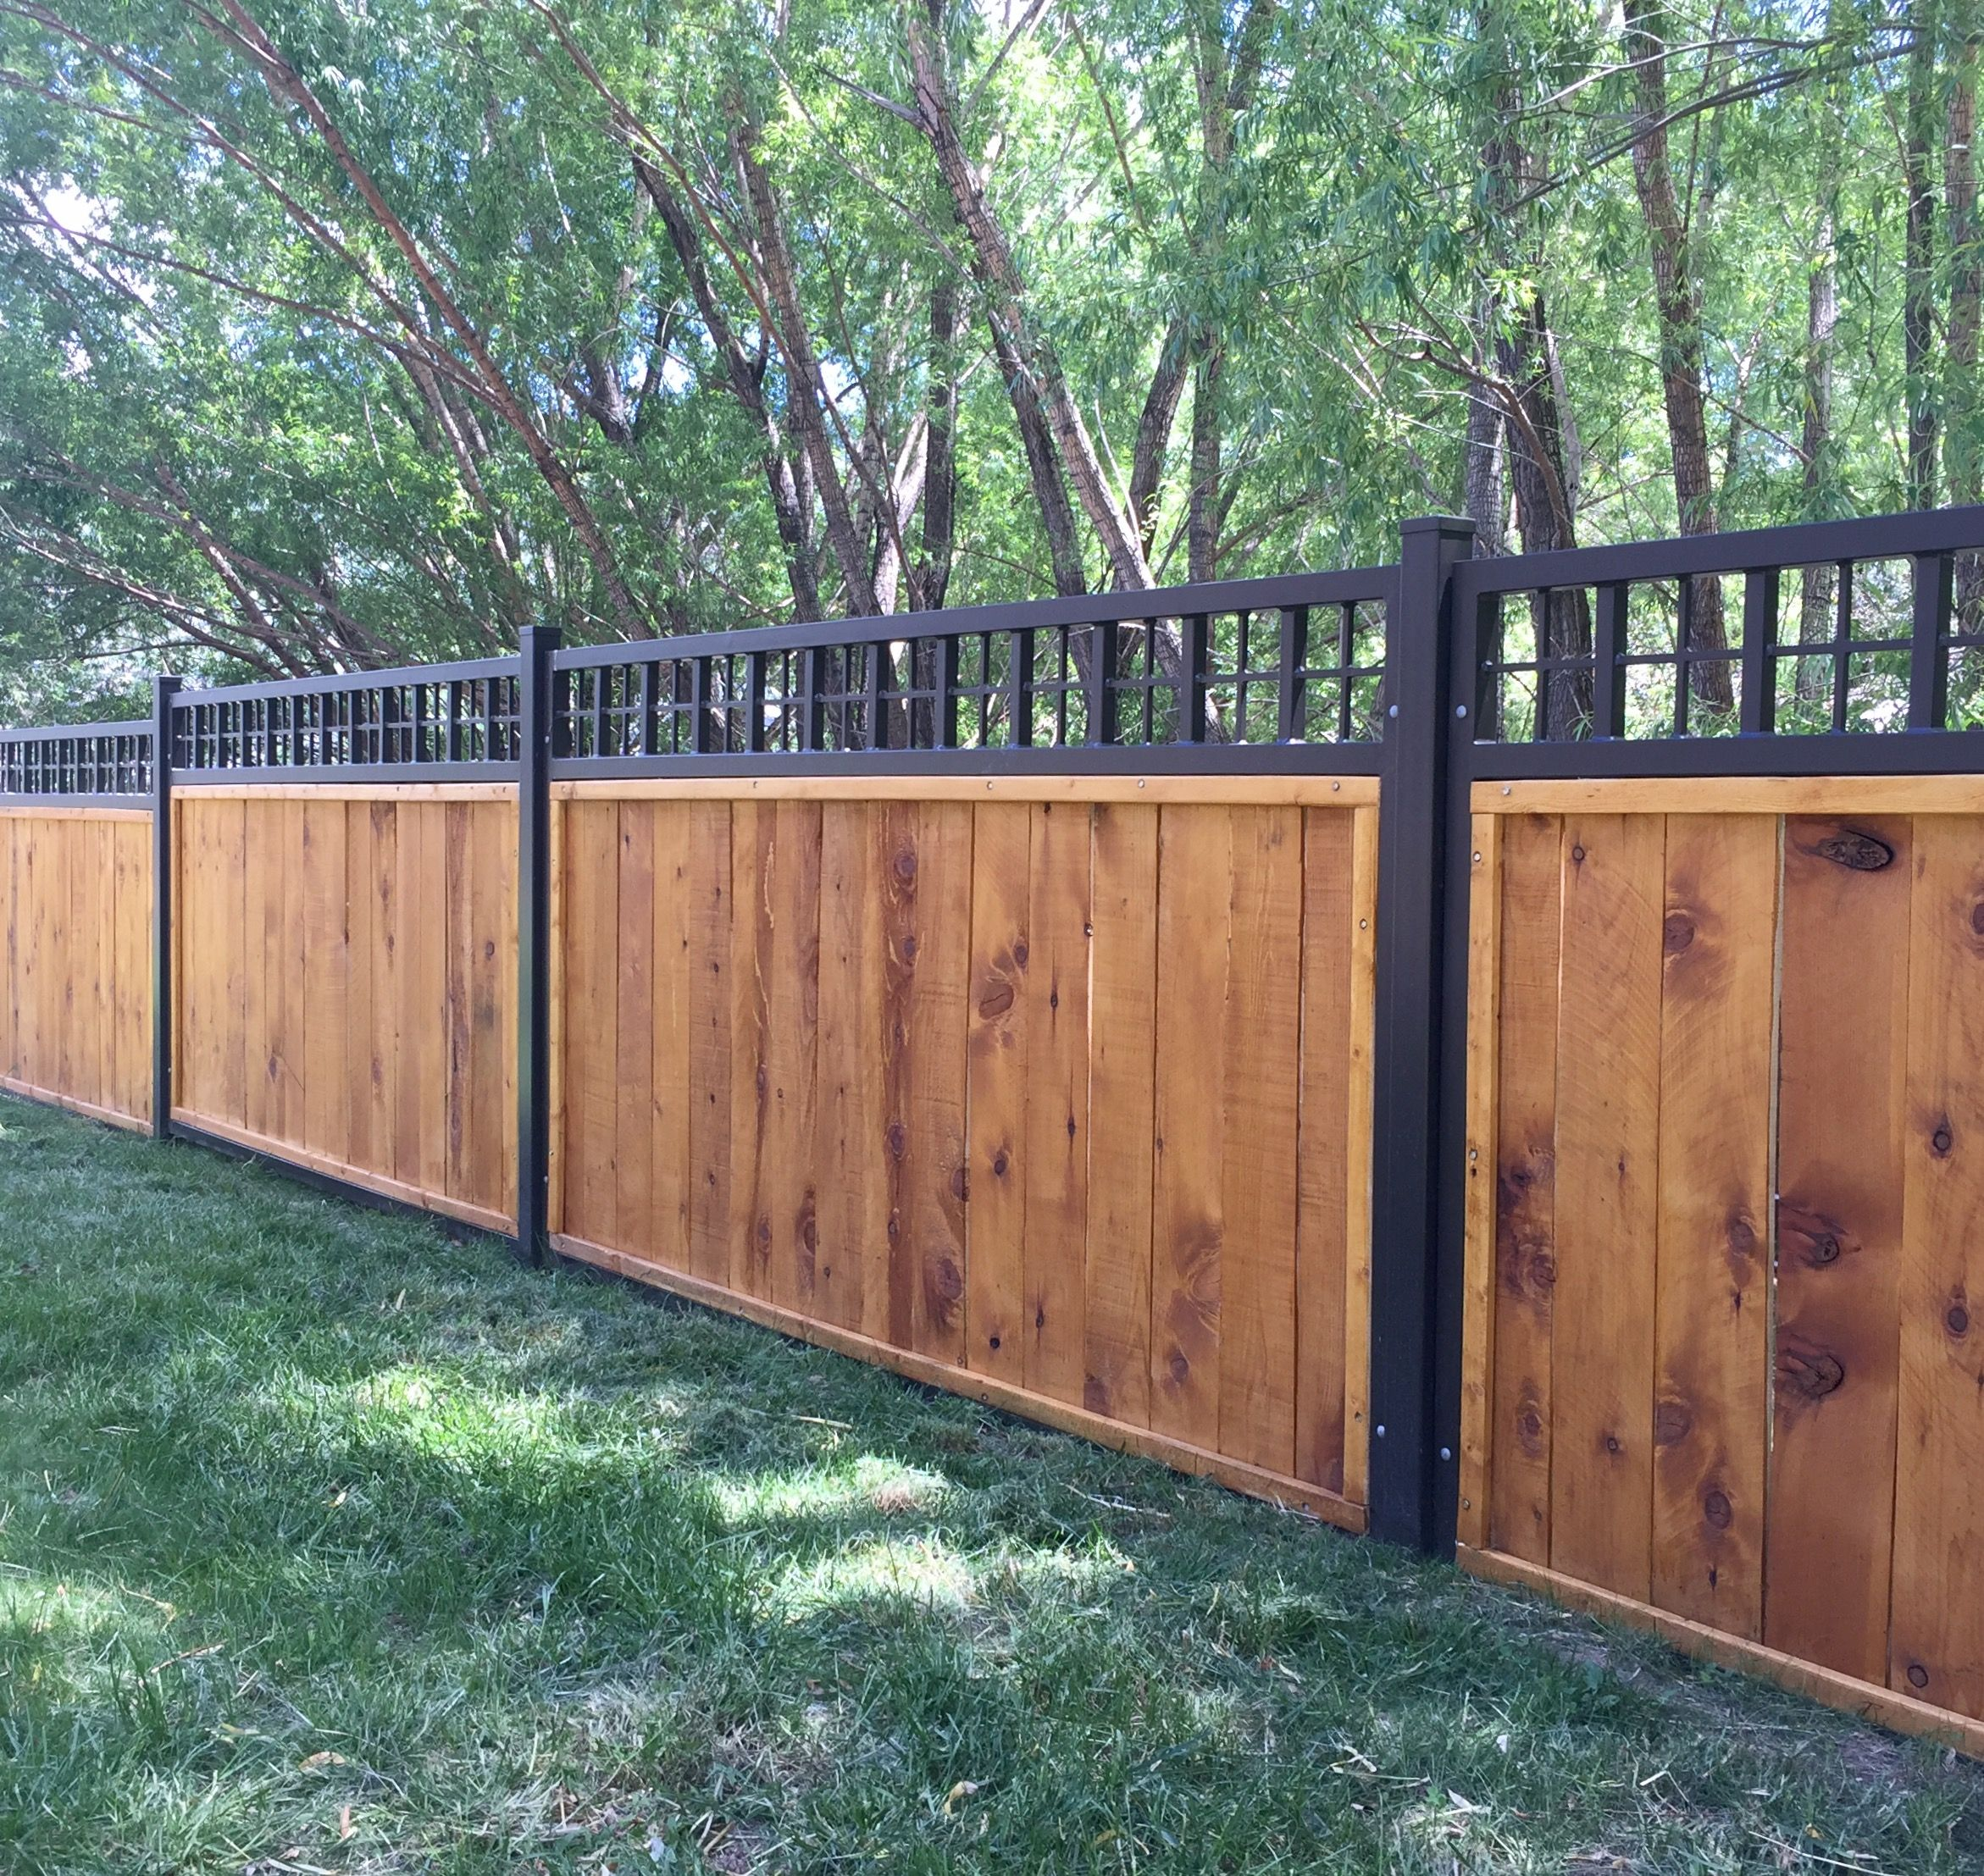 Steel Frame Fence Panels With Wood Privacy Fence Is A Unique And Beautiful Fence Privacy Fence Designs Fence Design Cheap Privacy Fence